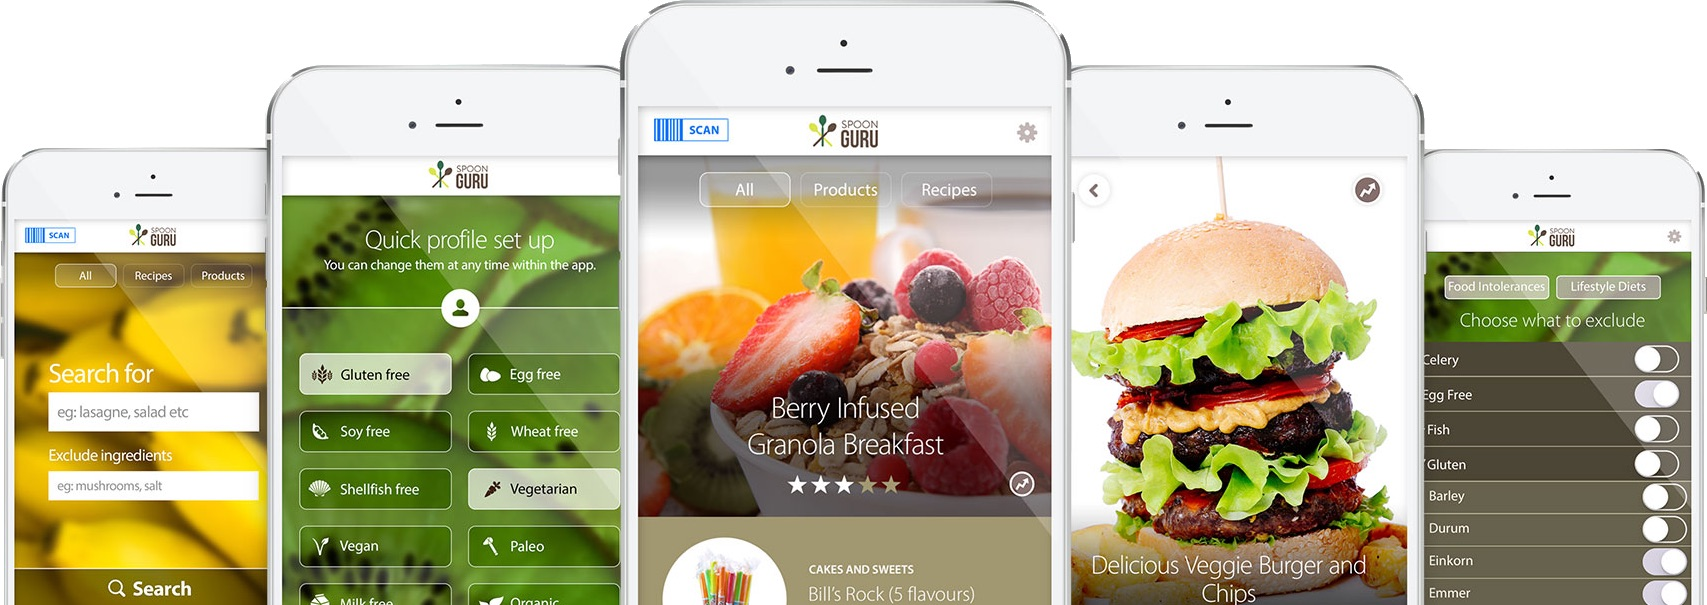 Best Food Intolerance Apps